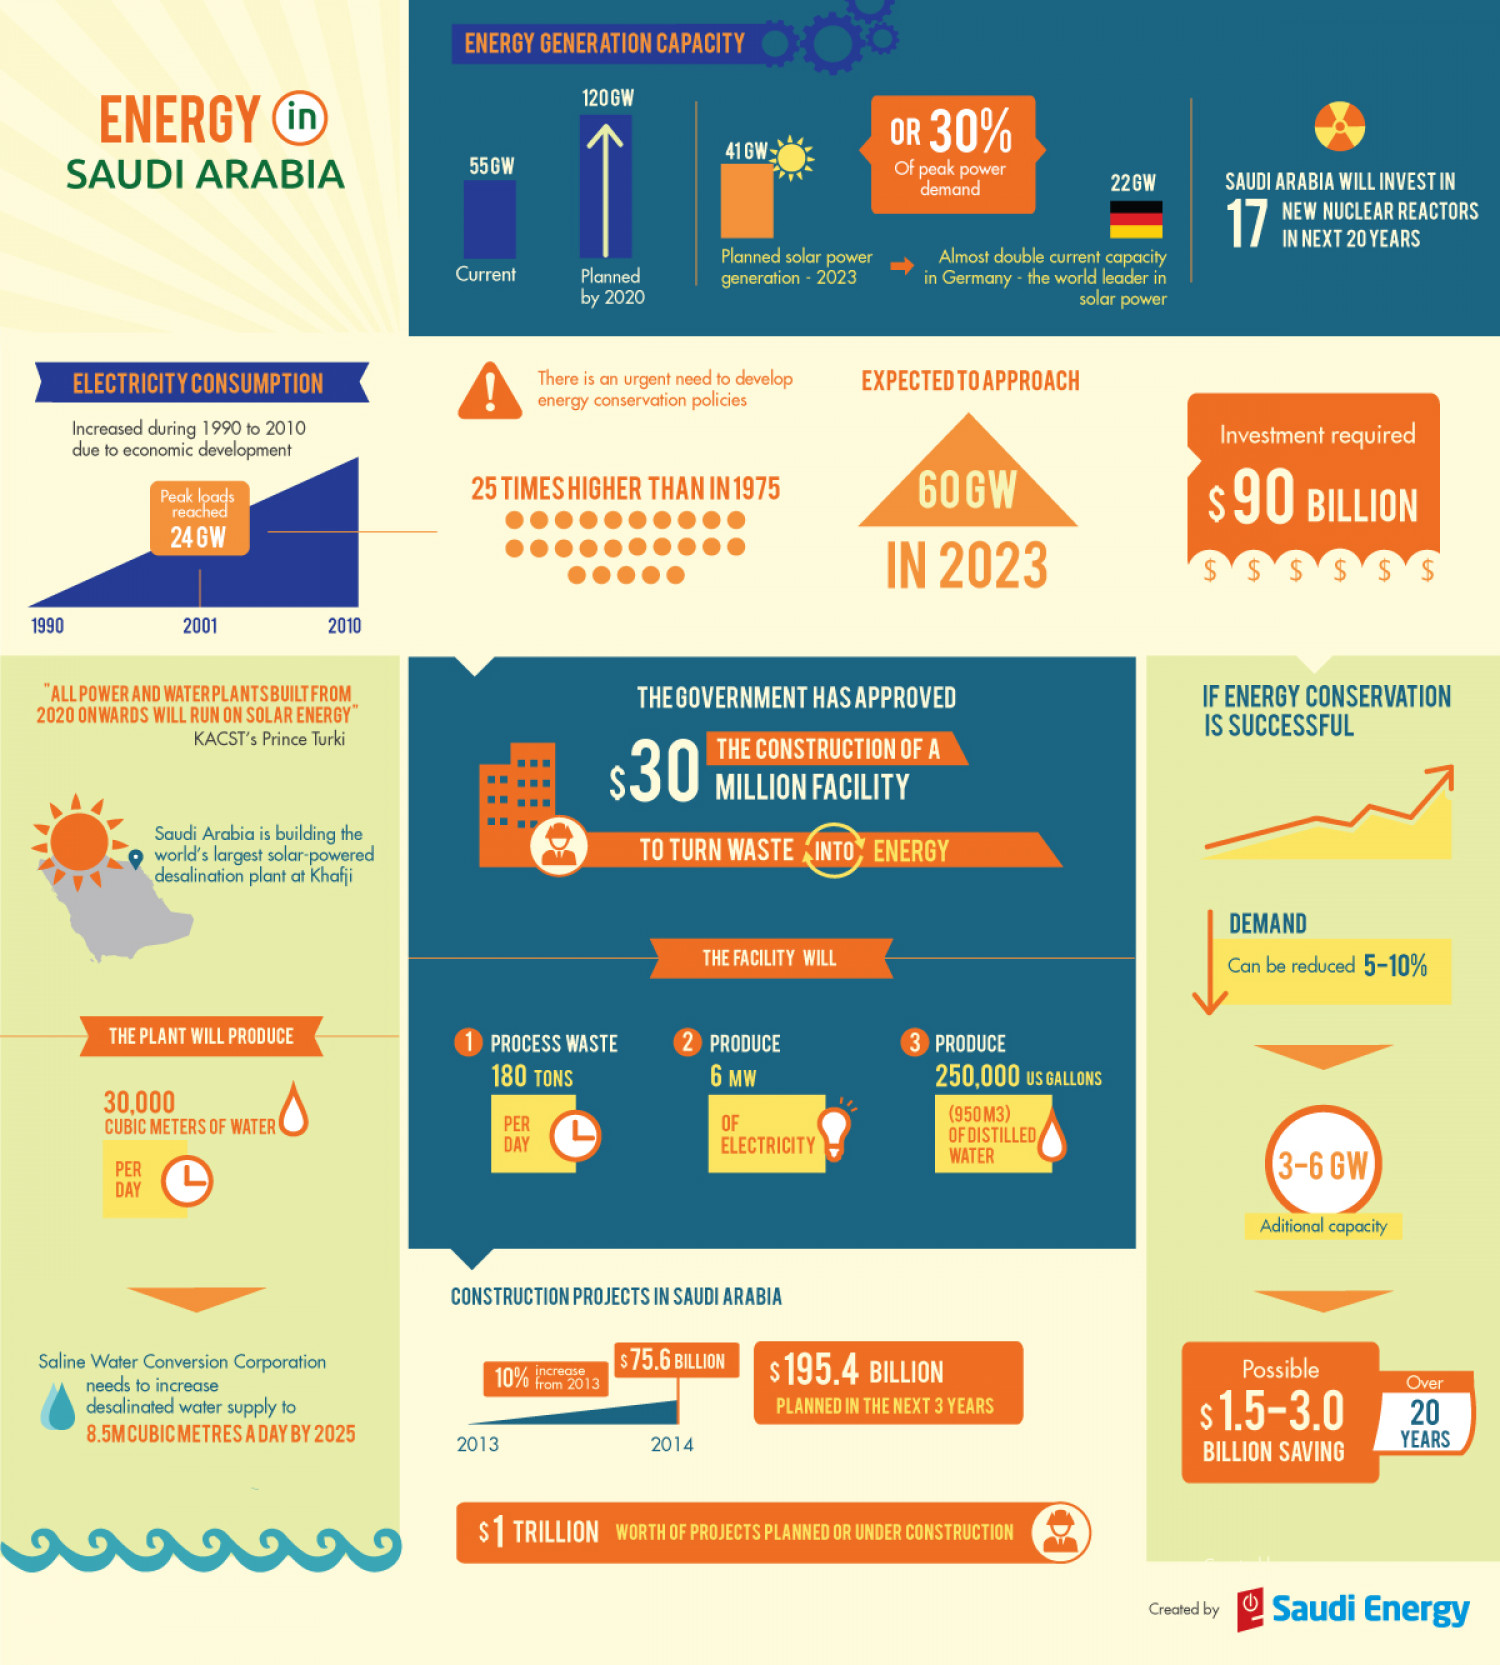 Energy in Saudi Arabia Infographic